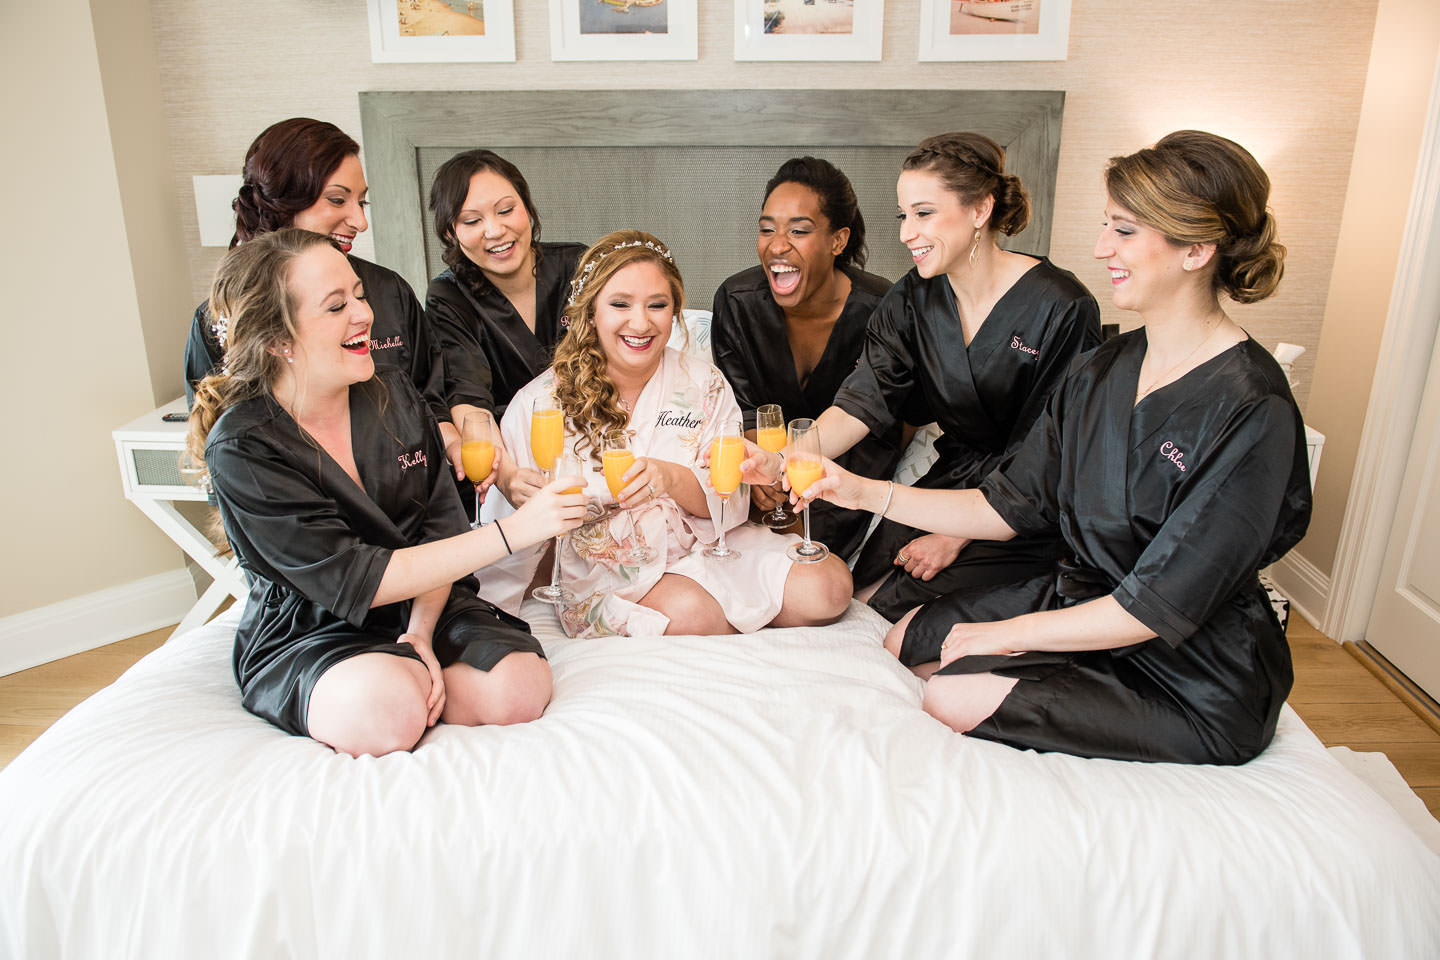 bride and bridesmaids sit on bed in bathrobes drinking mimosas during getting ready for wedding at reeds at shelter inn